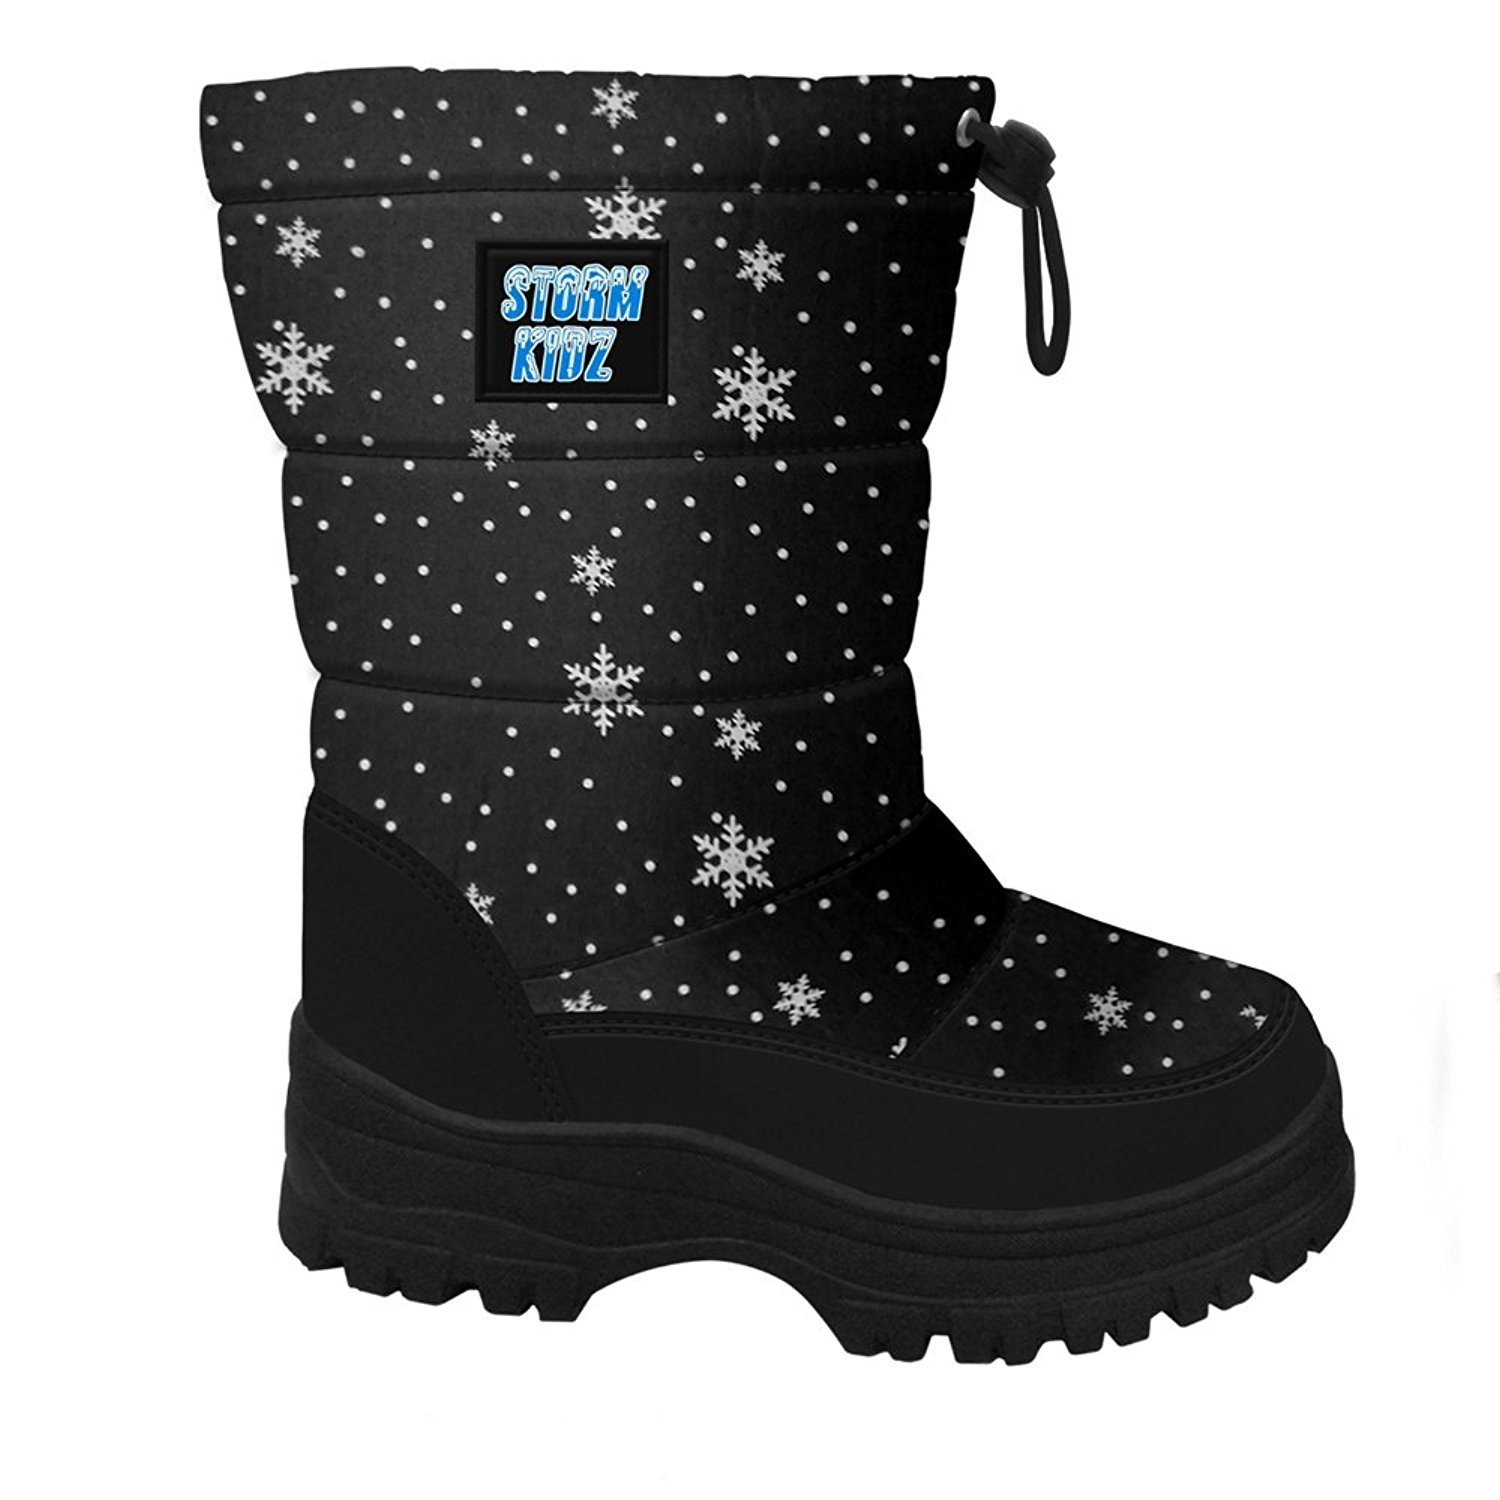 Many Colors Storm Kidz Girls Cold Weather Snow Boot Puffy Toddler//Little Kid//Big Kid